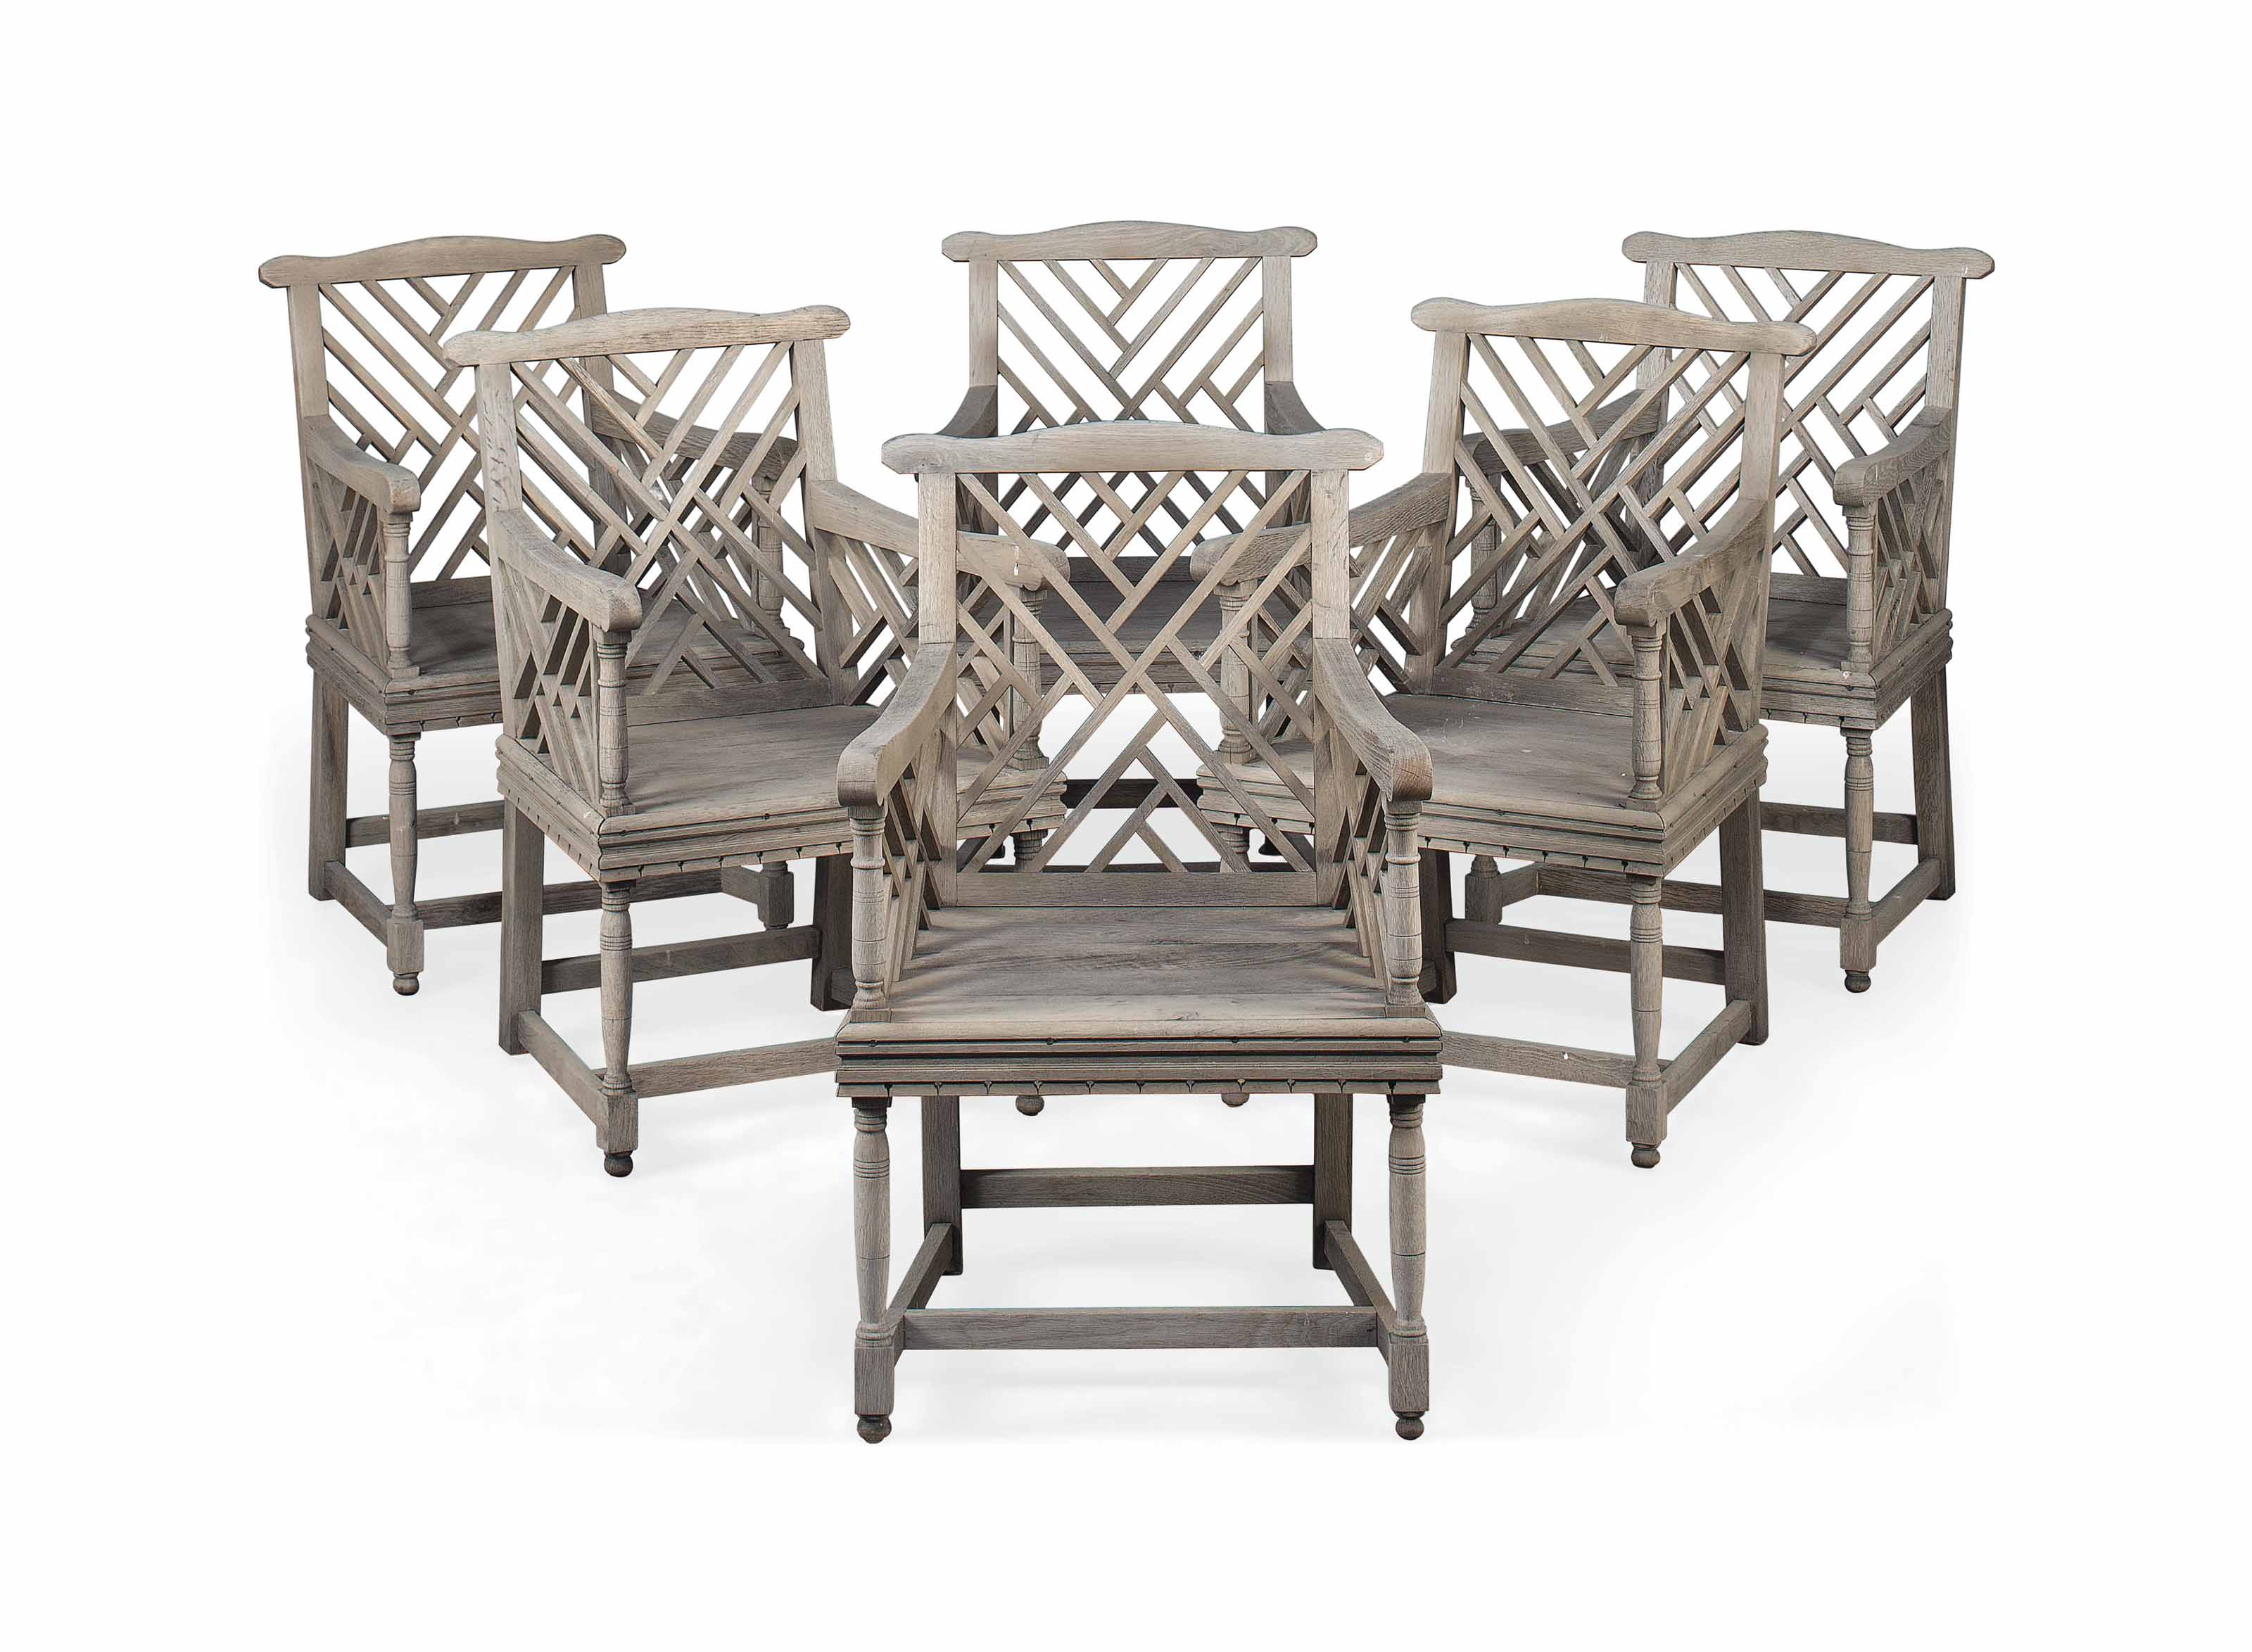 A SET OF SIX LIMED OAK GARDEN CHAIRS